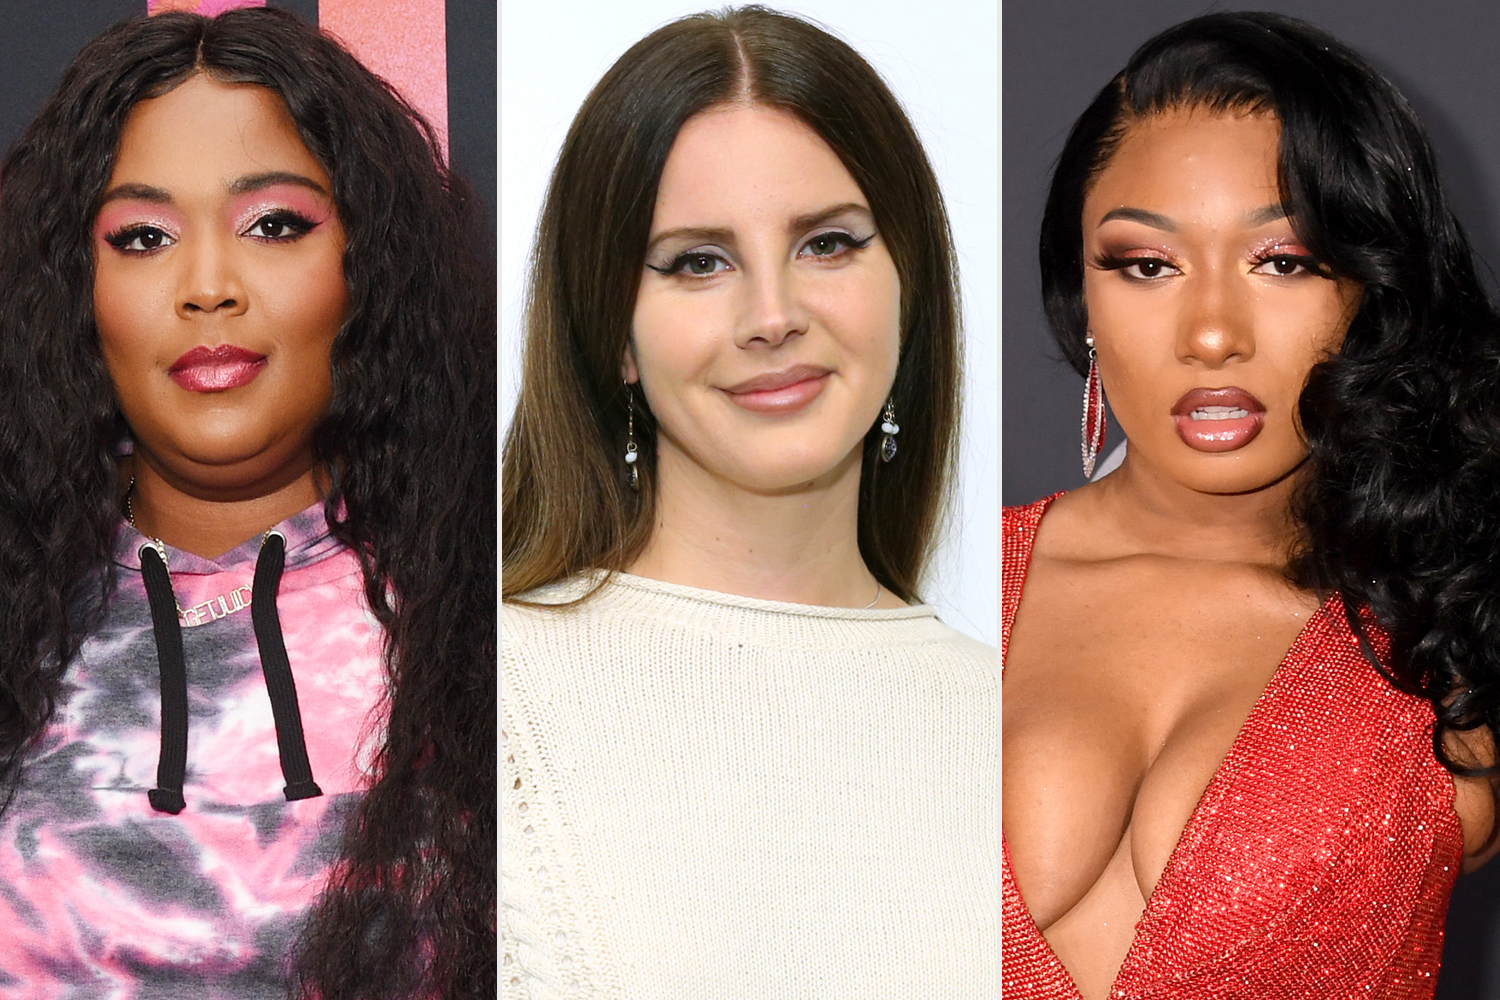 Bonnaroo Is Back! Megan Thee Stallion, Lana Del Rey and Lizzo to Perform at the September Festival